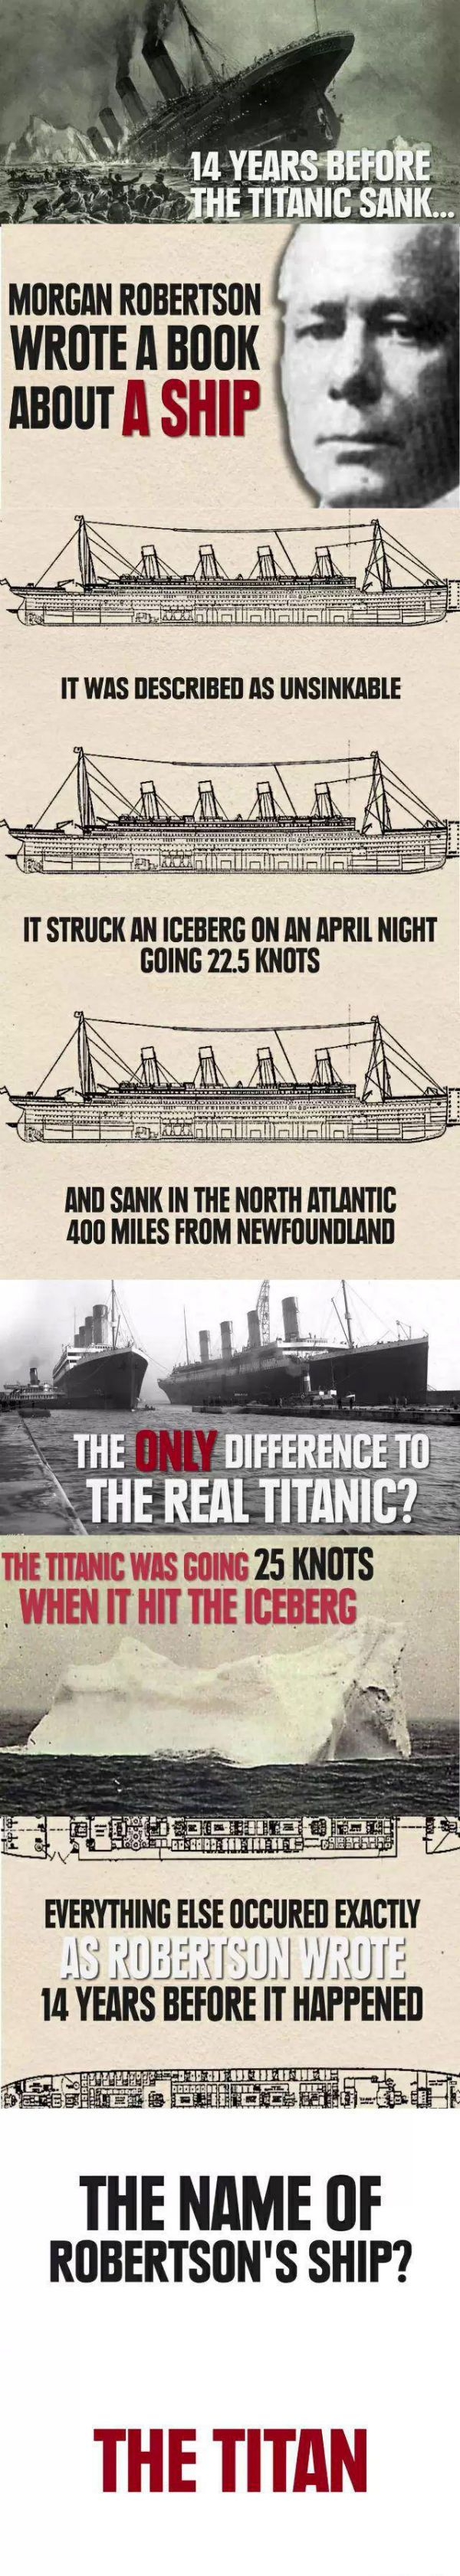 14 years before the titanic sank...is this true?